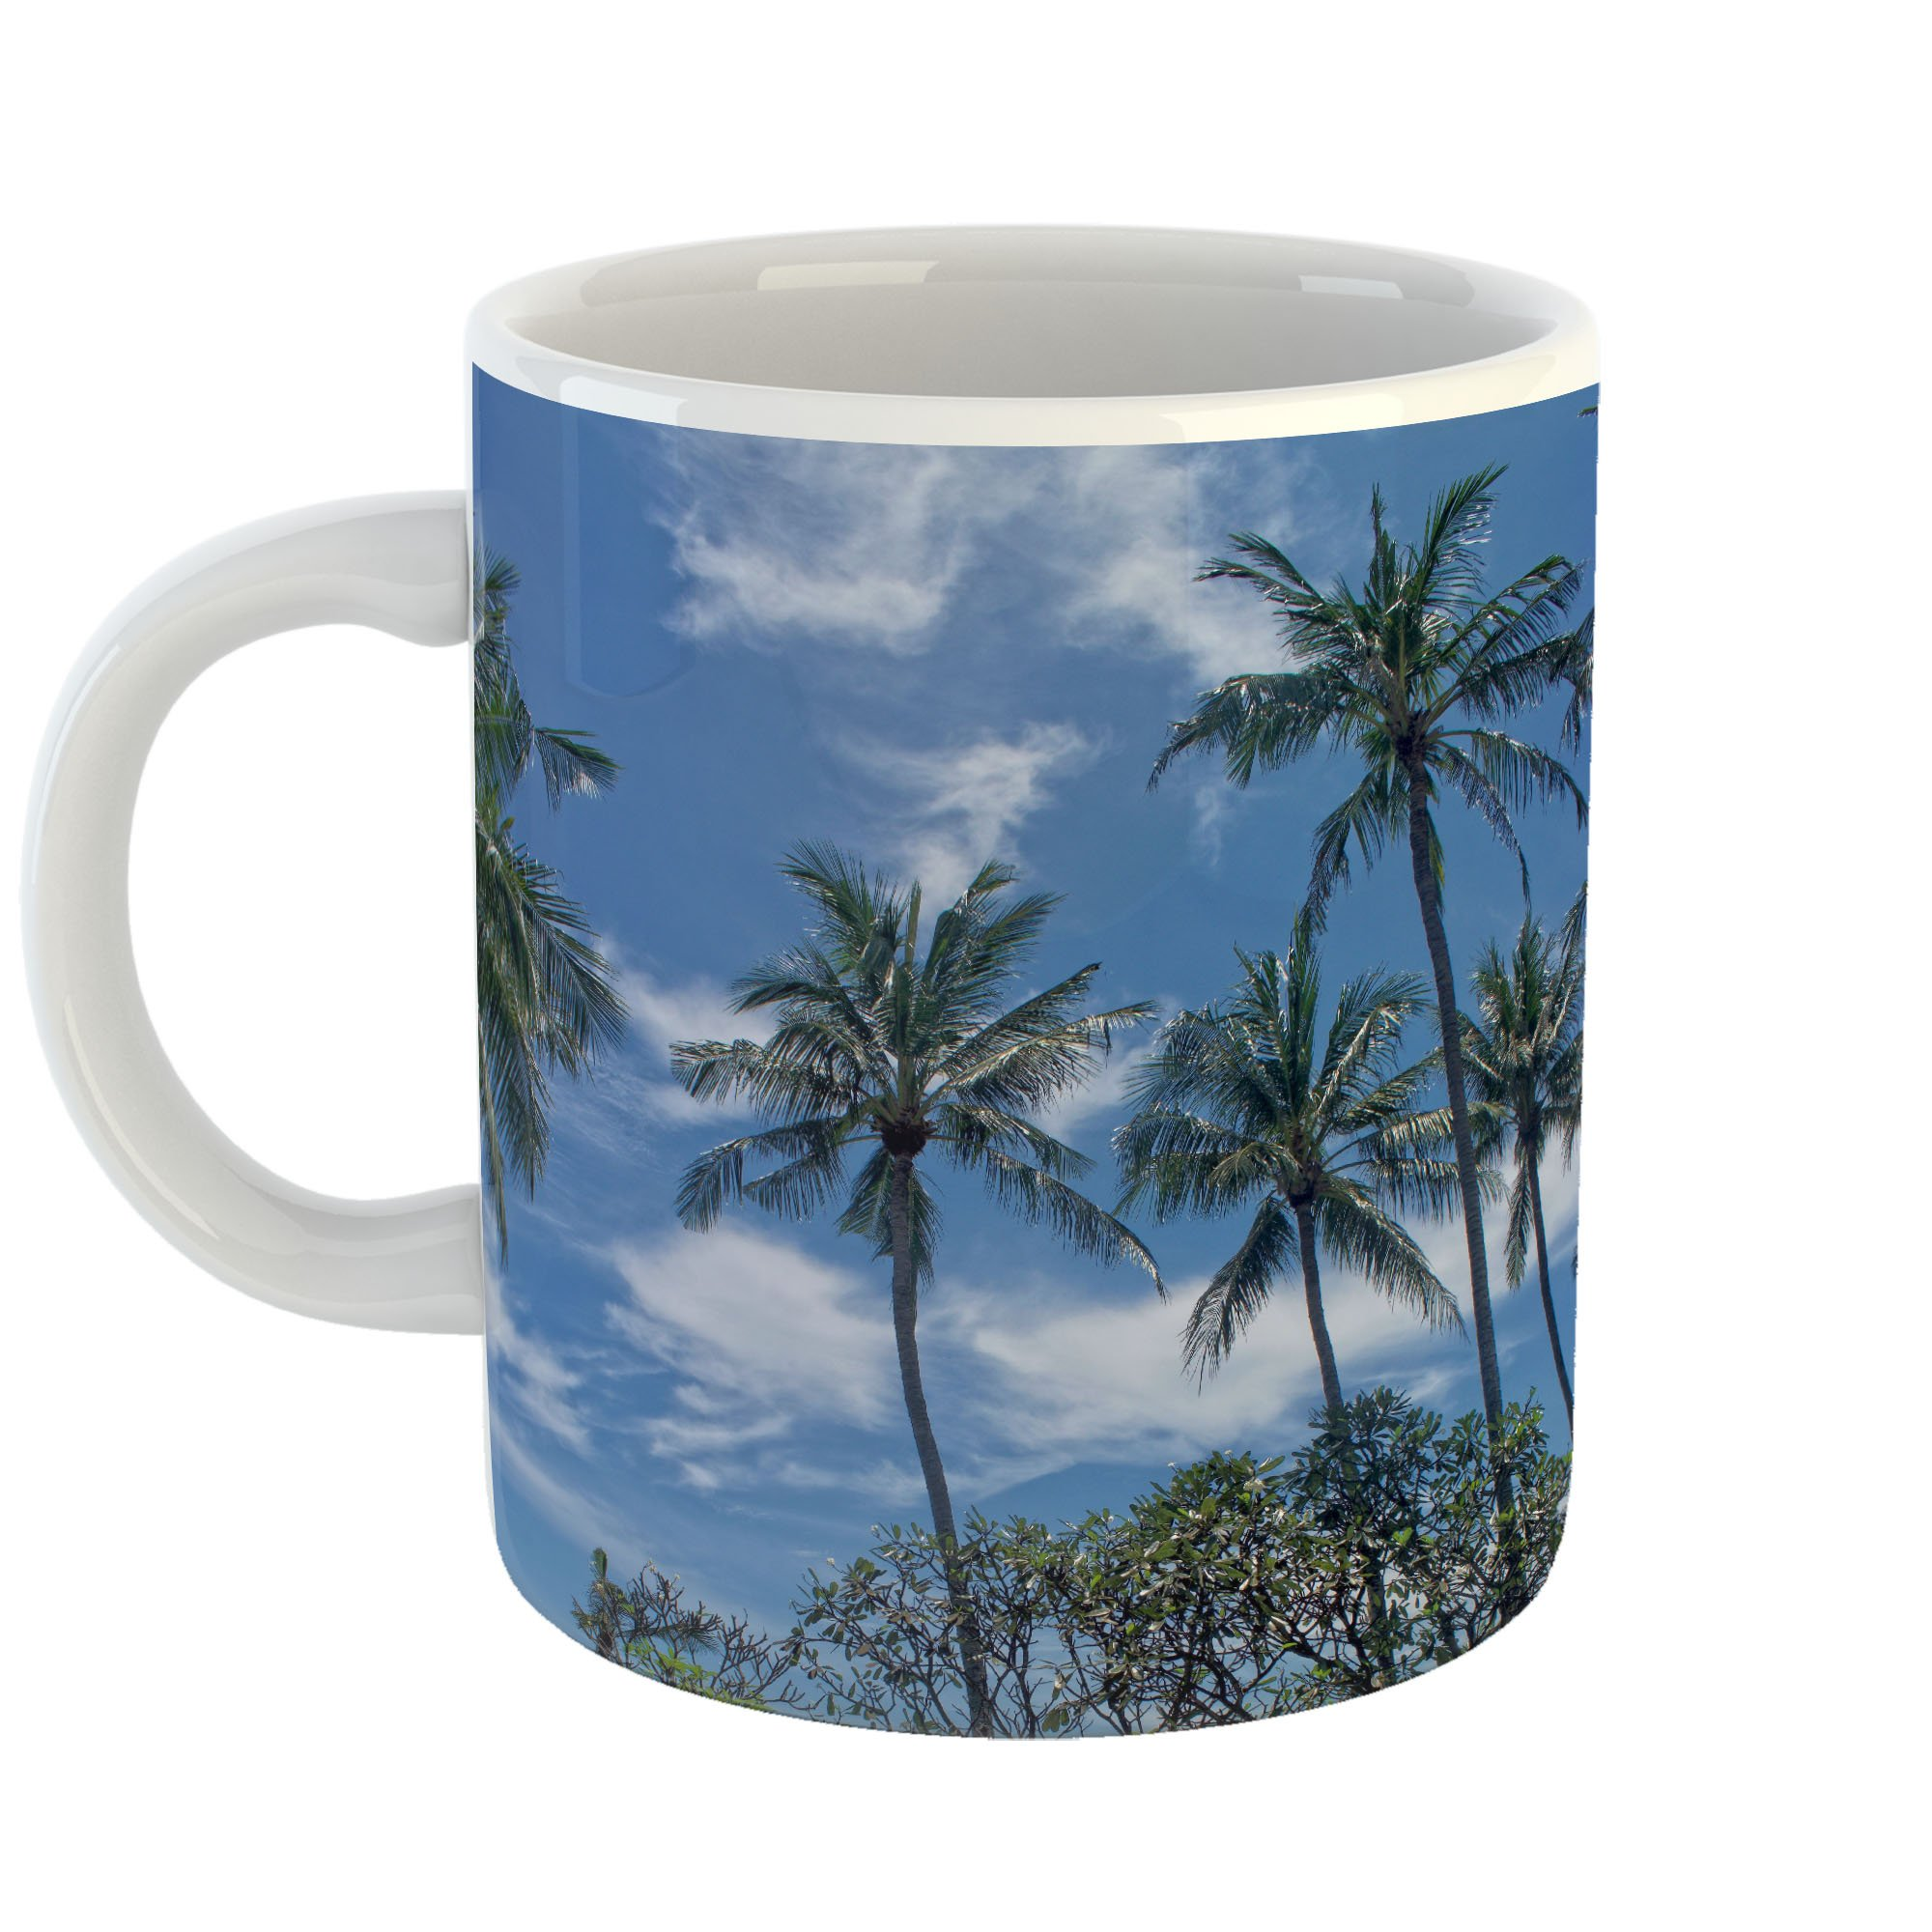 Westlake Art - Tembok Spa - 11oz Coffee Cup Mug - Modern Picture Photography Artwork Home Office Birthday Gift - 11 Ounce (9EBA-3F78D)